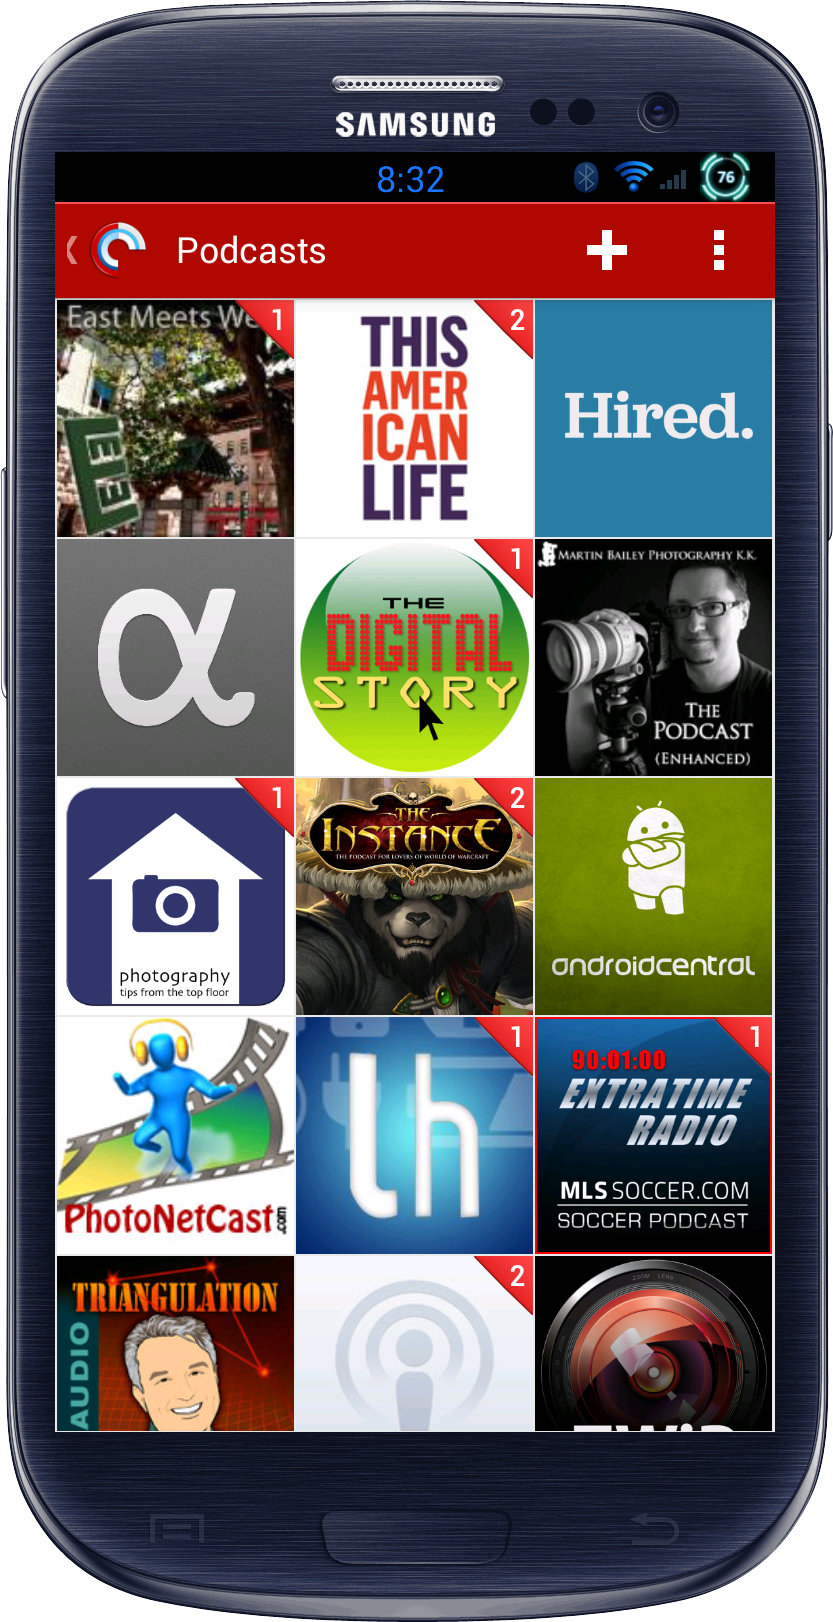 First page of podcasts on a GS3 phone. East Meets West, This American Life, Hired, App.Net, The Digital Story, Martin Bailey Podcast, Tips From the Top Floor, The Instance, Android Central, PhotoNetCast, Lifehacker, Extra Time Radio.